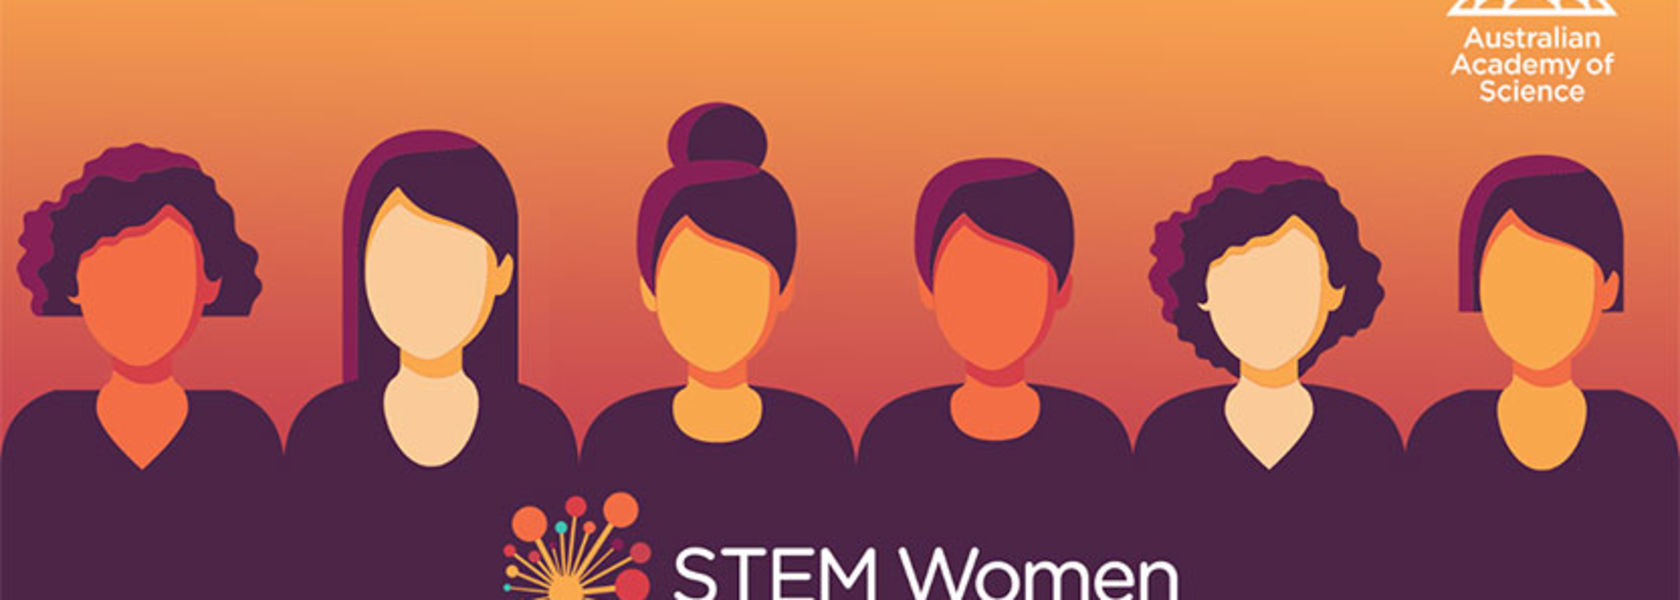 STEM women now easier to find